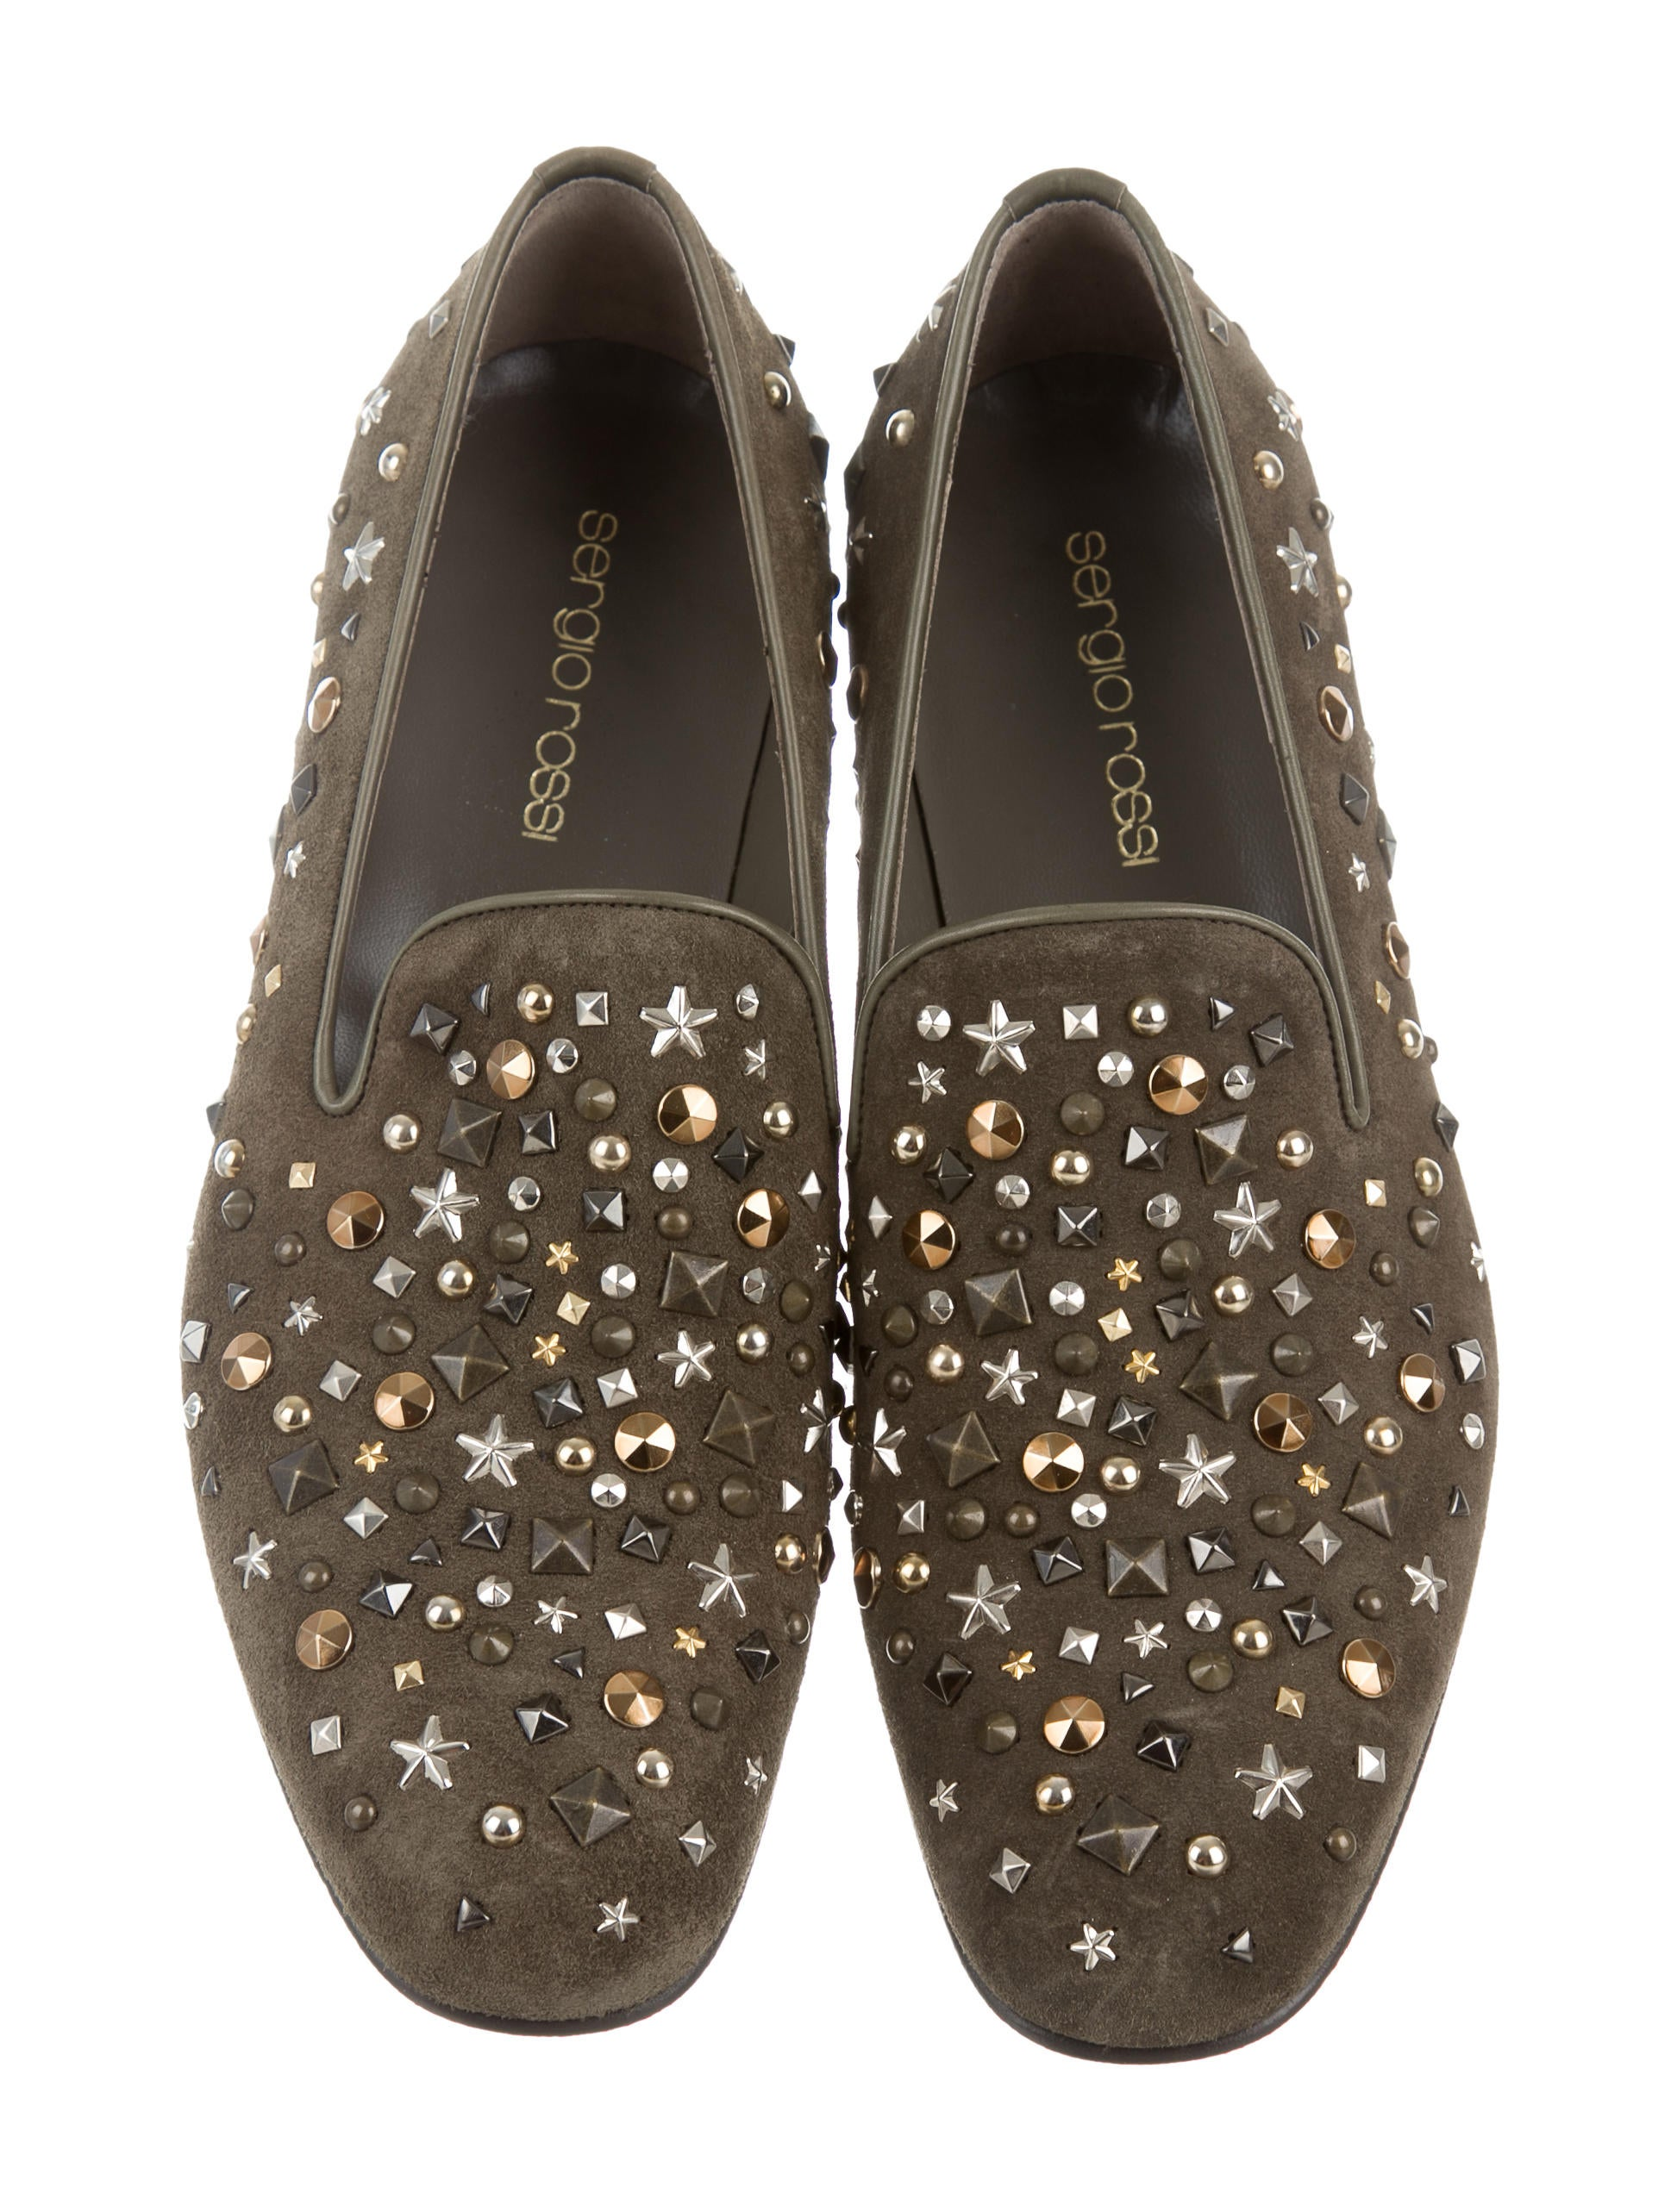 Sergio Rossi Embellished Suede Smoking Slippers Shoes